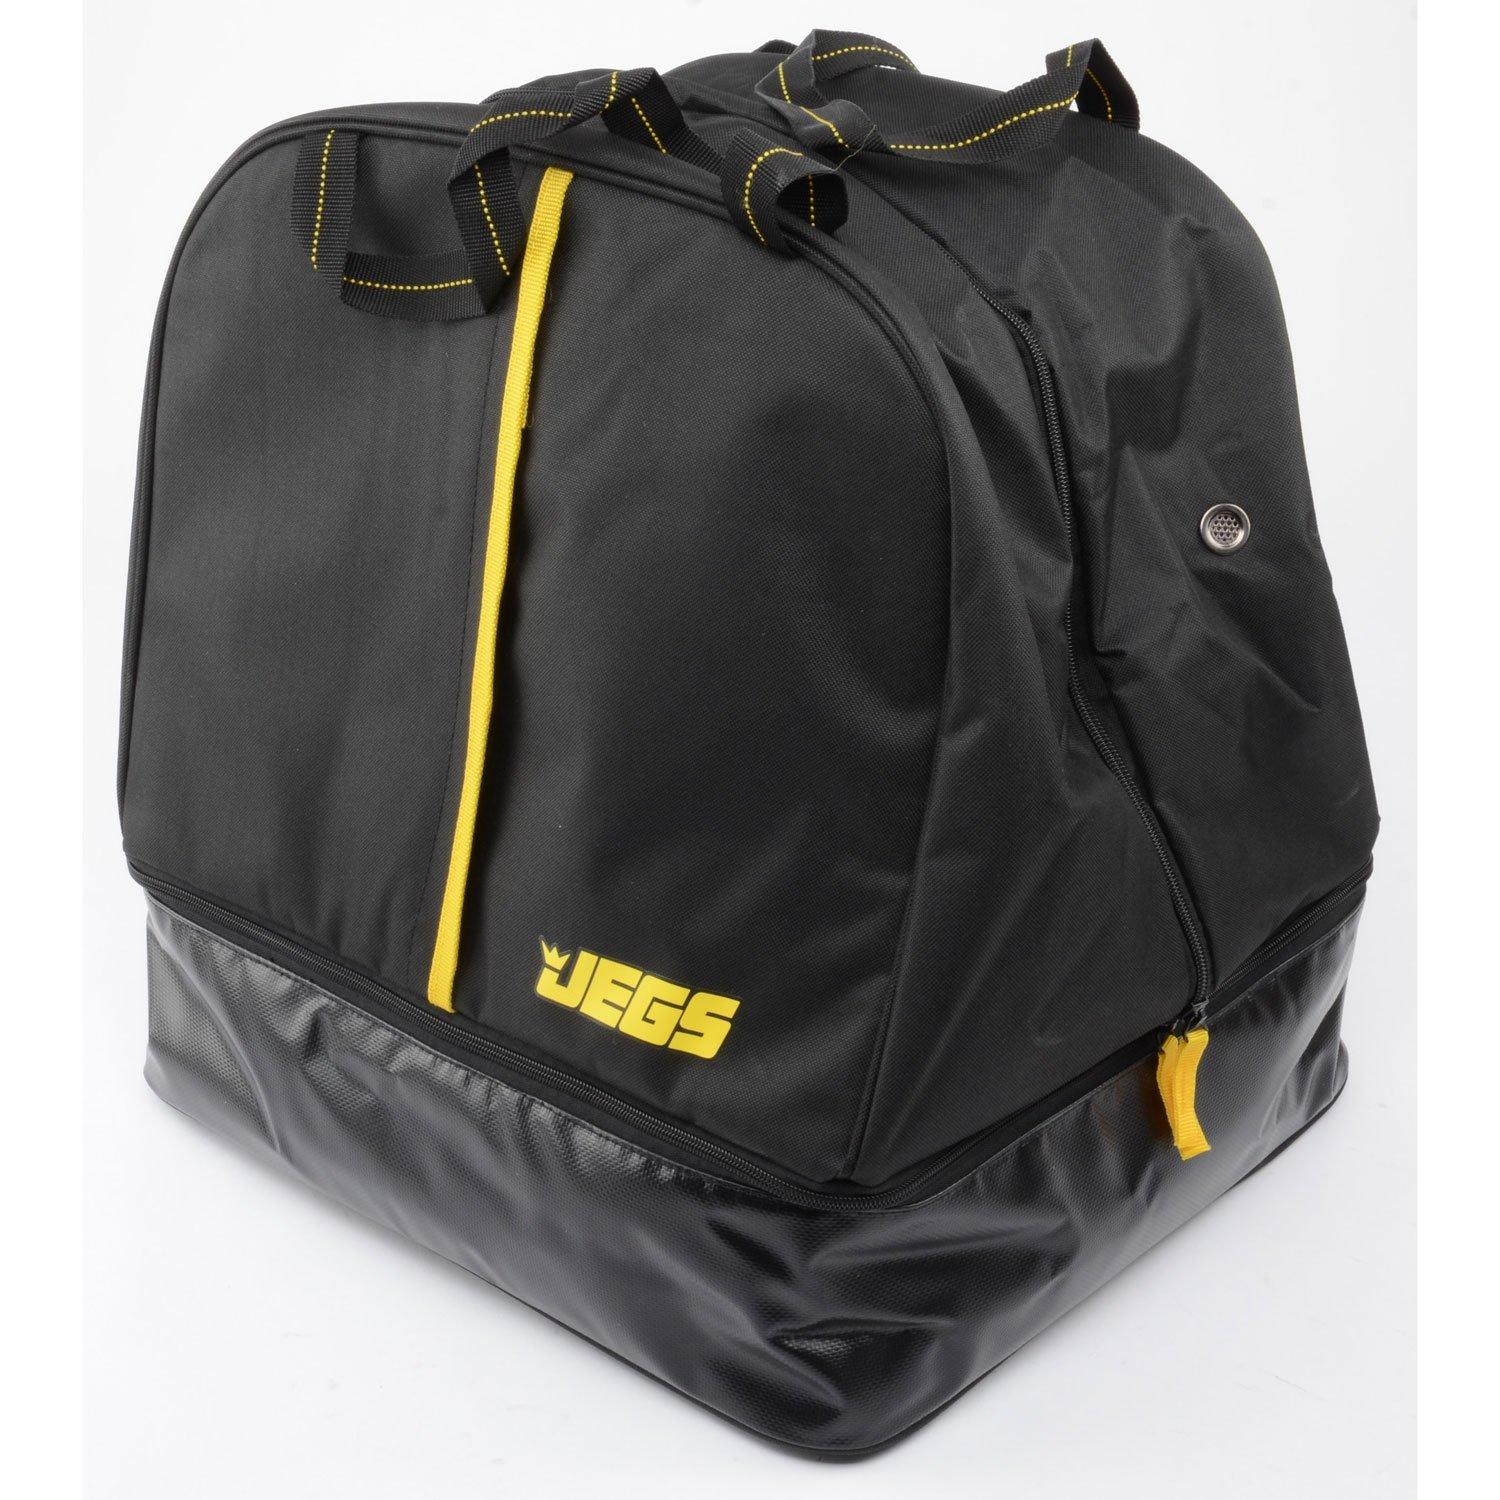 JEGS Performance Products 1019 Deluxe Helmet Bag with Neck Support Storage